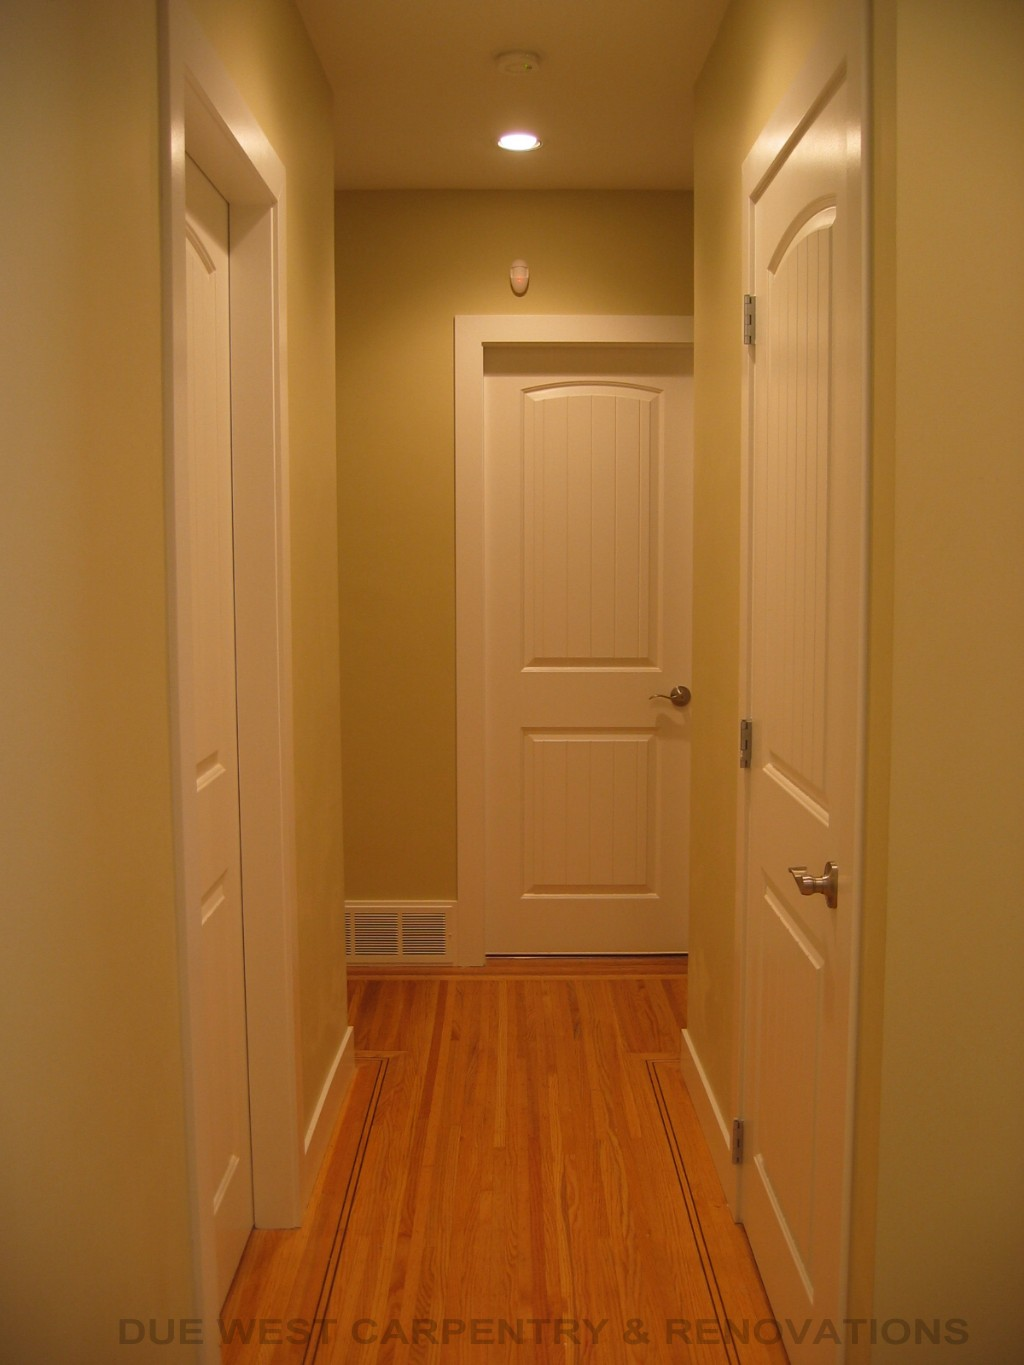 Changing The Interior Doors In A House Can Be One Of Most Attractive Upgrades For Your Dollar Since Lot New Homes Throughtout Decades Have Had